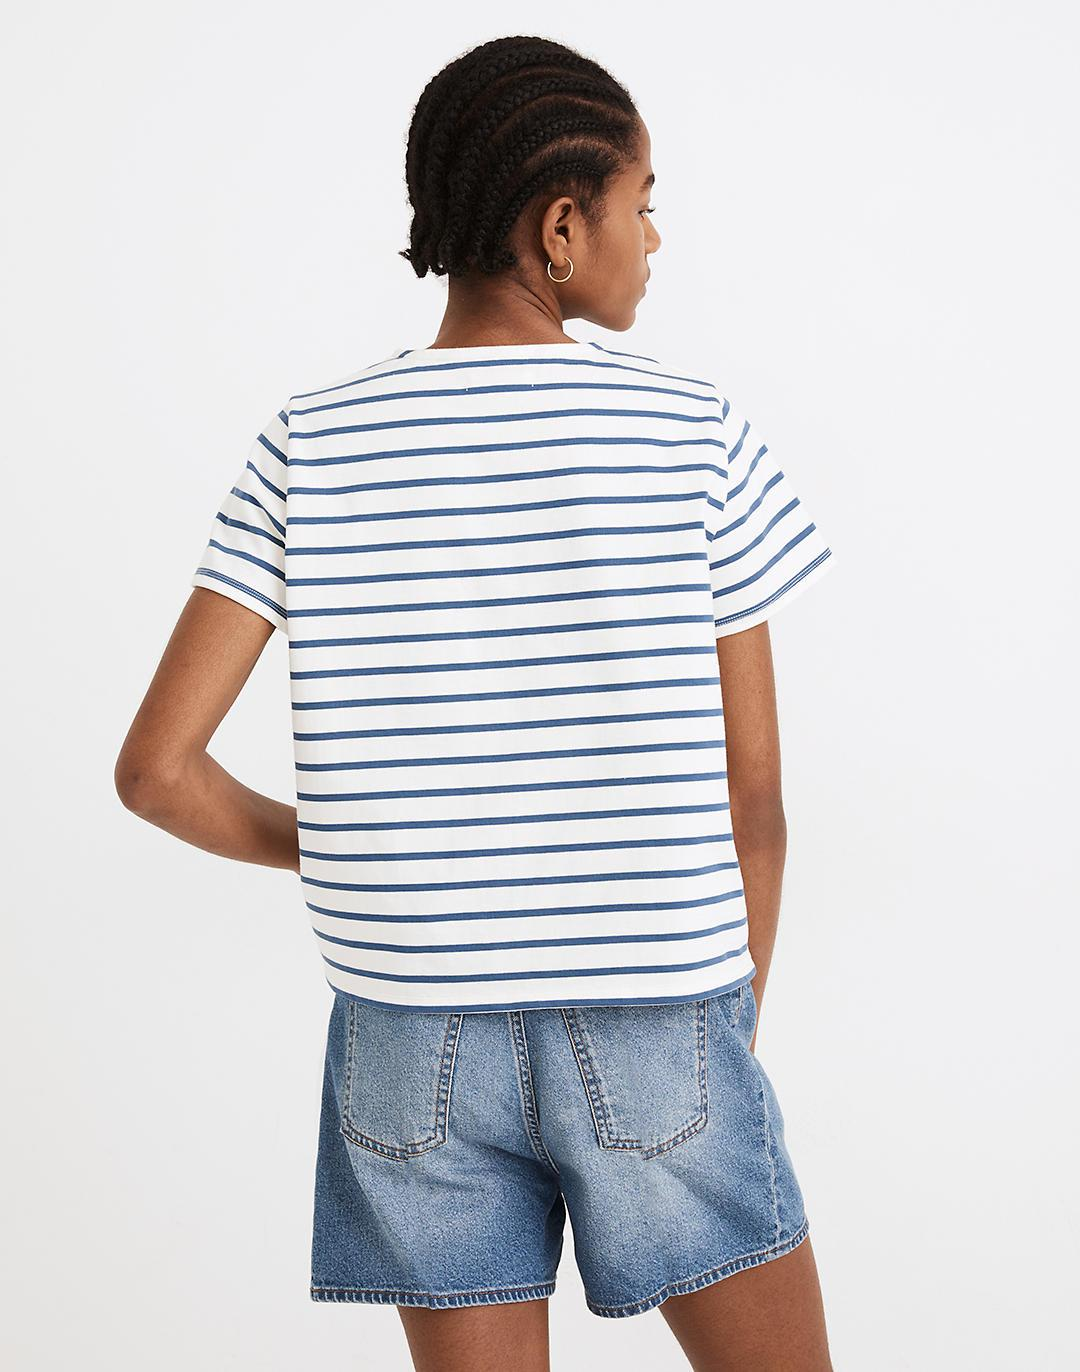 Luxe Boxy-Crop Tee in Atmore Stripe 2